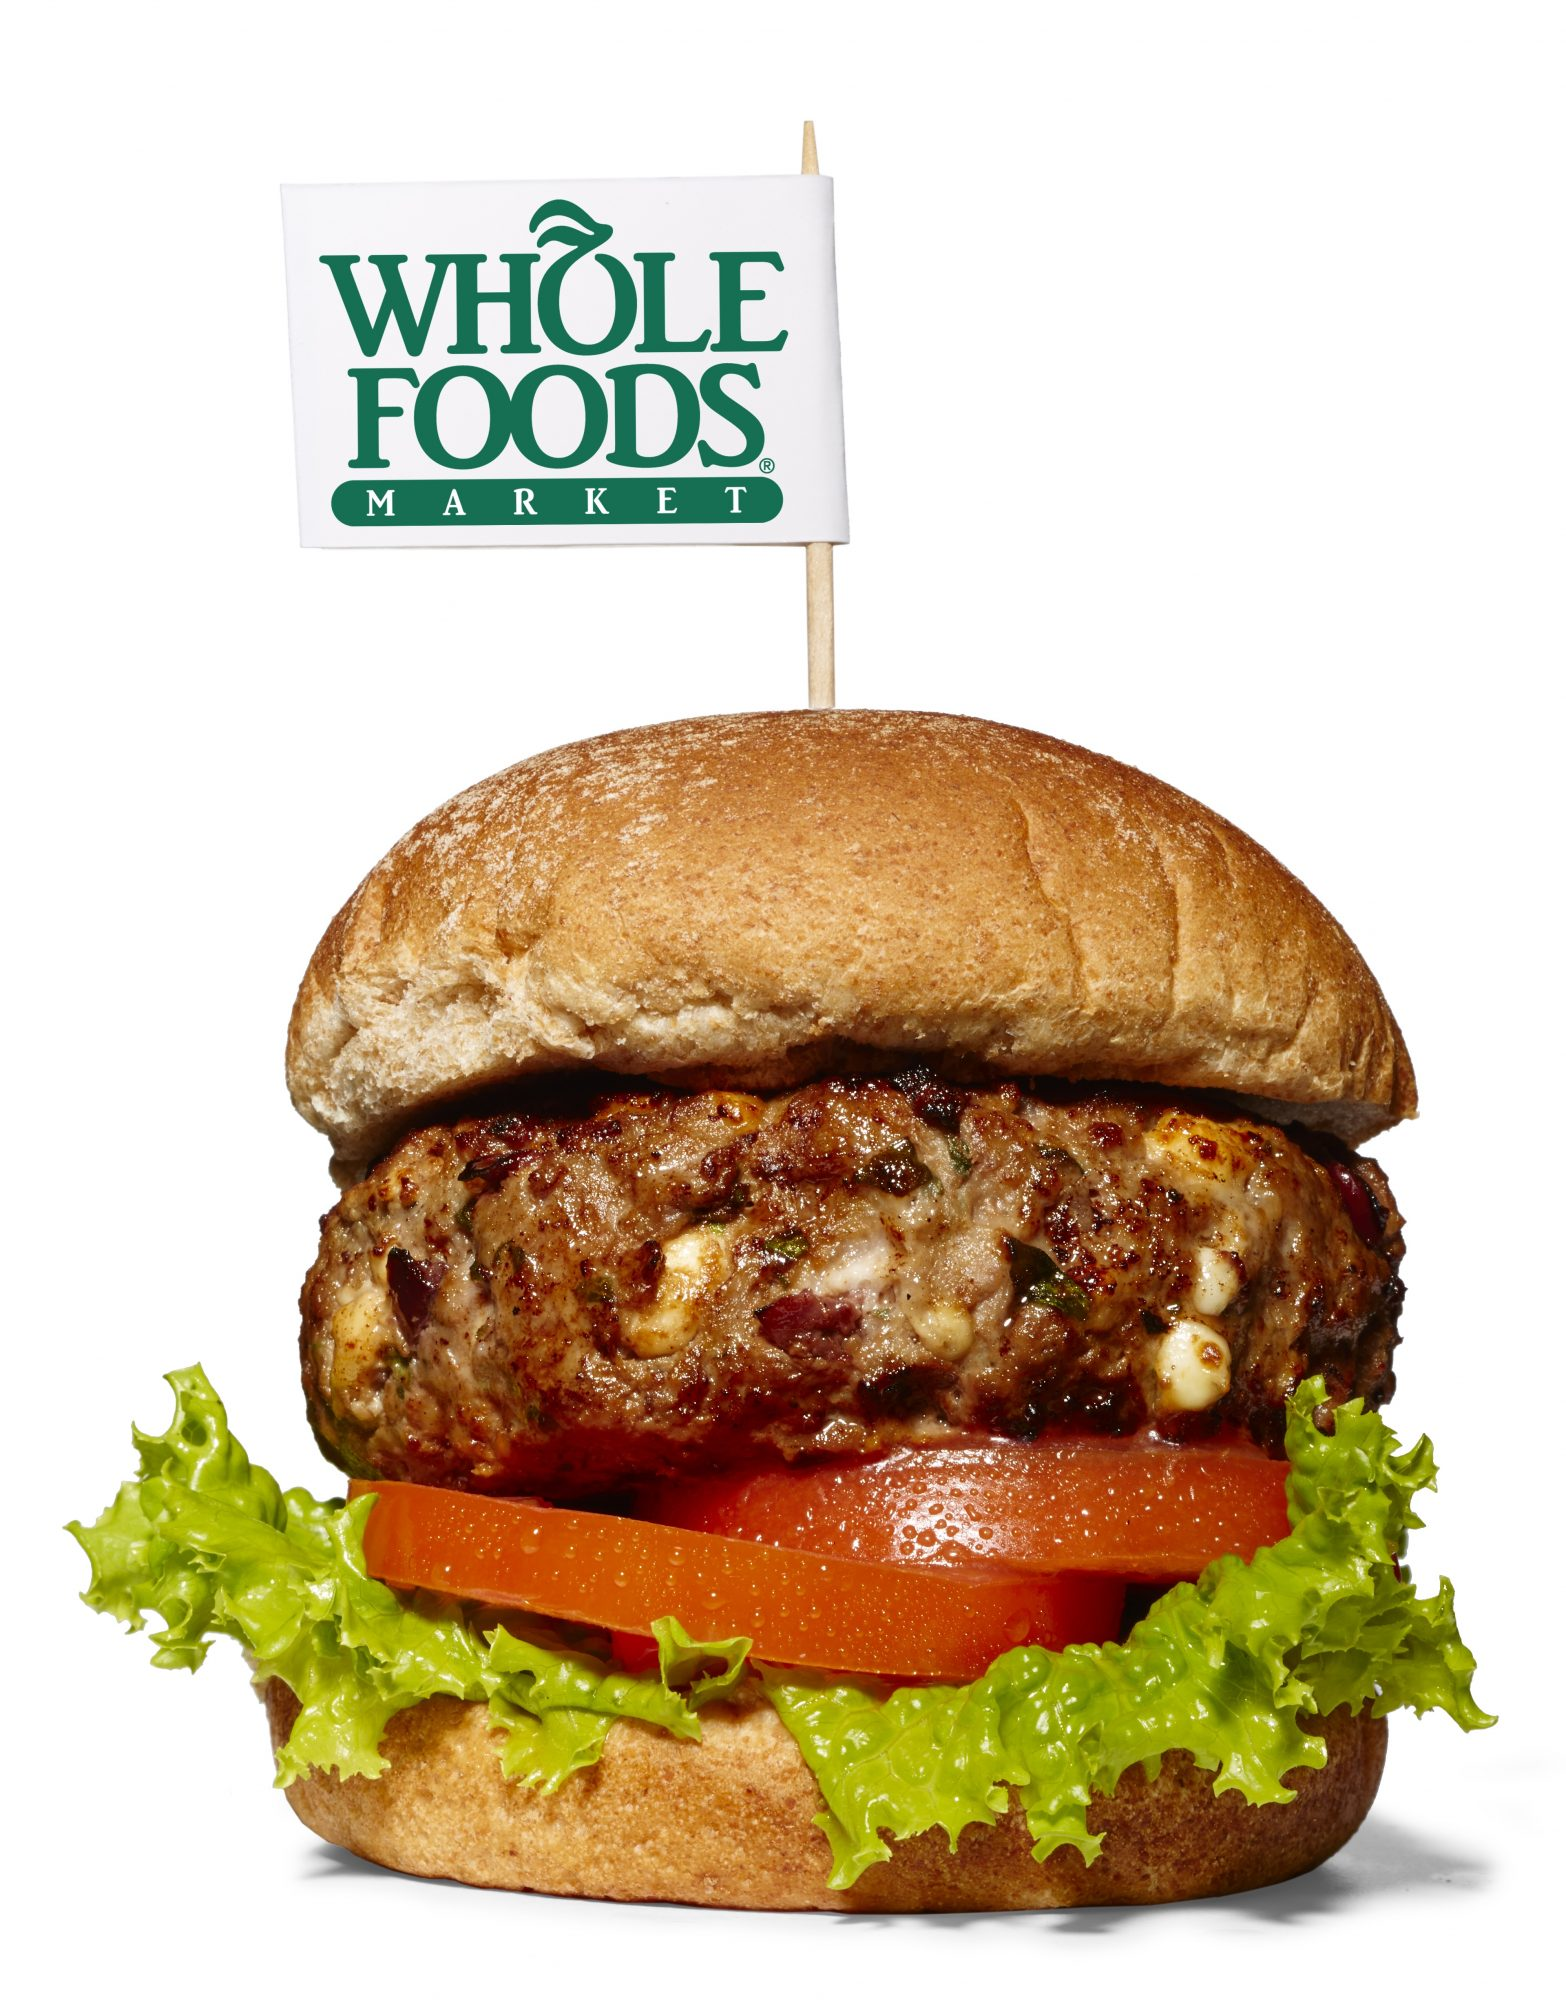 Whole foods burger